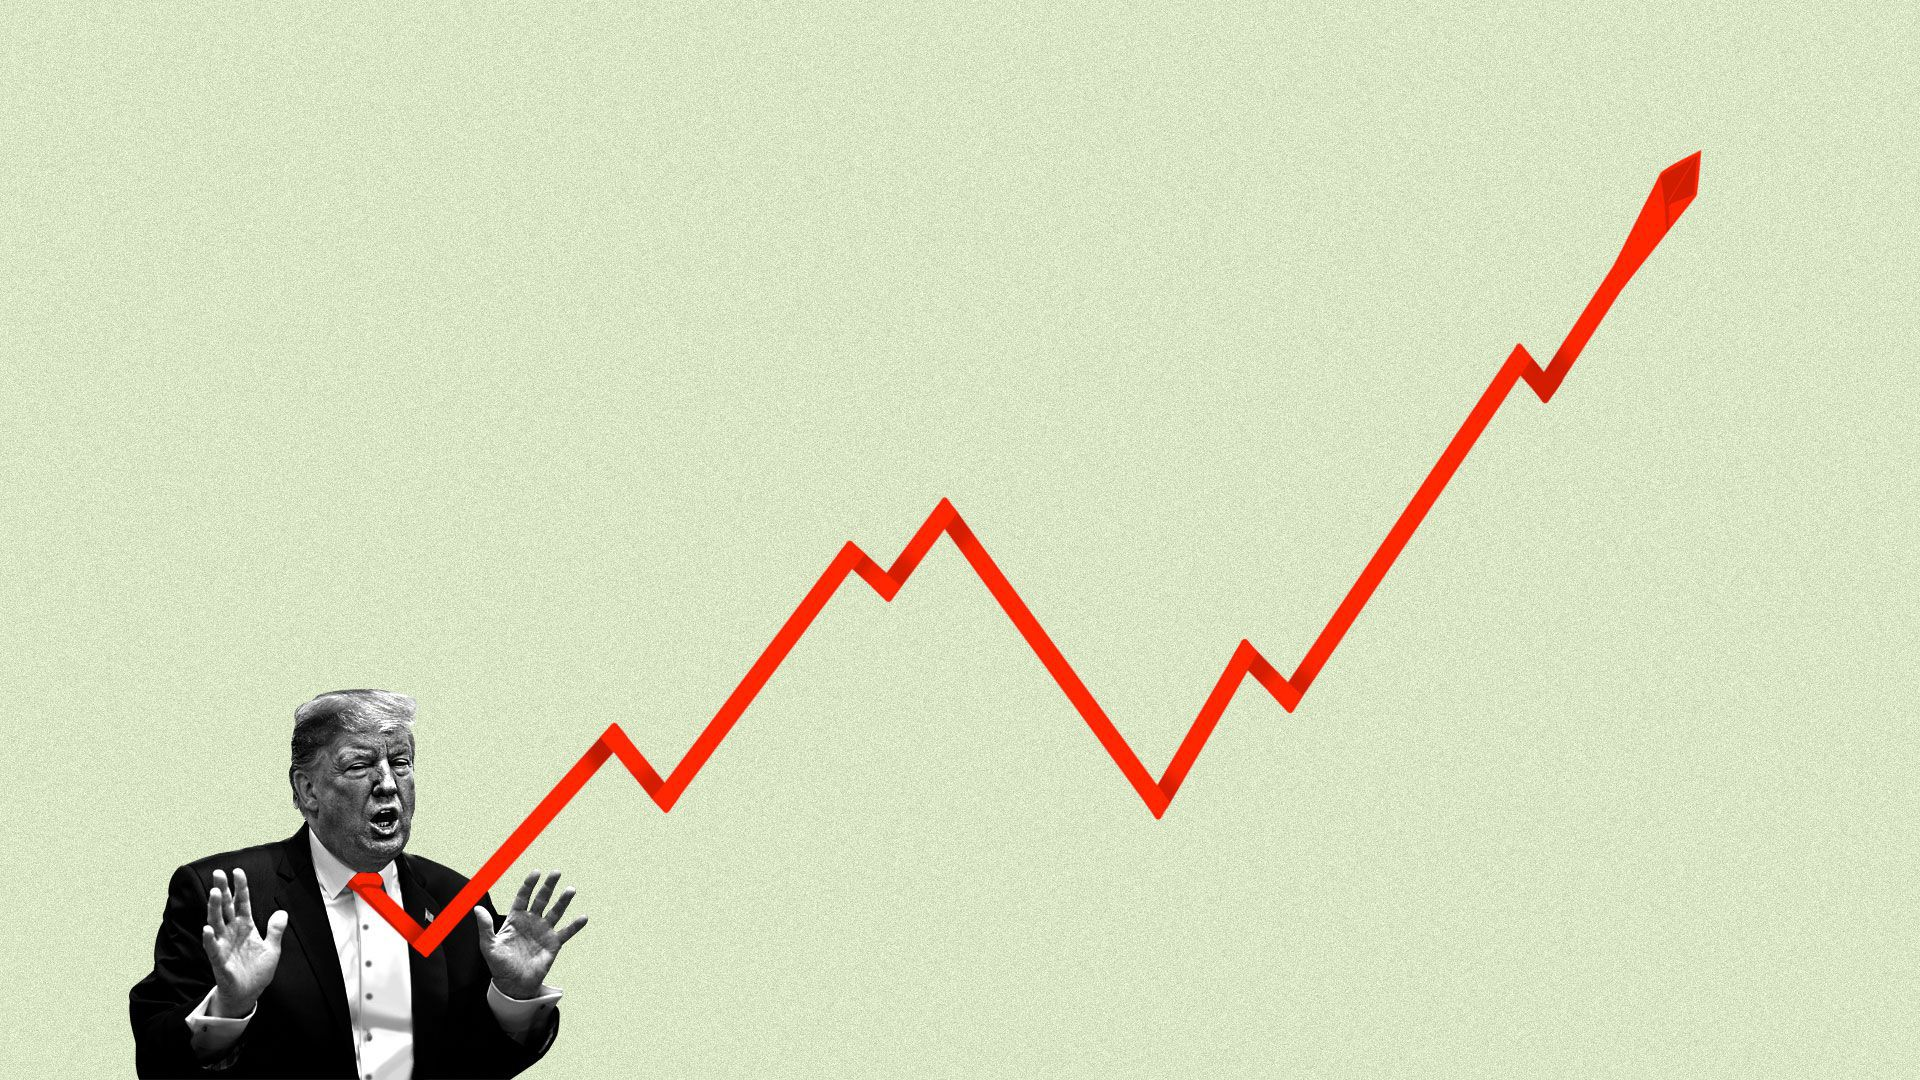 An unwieldy stock chart emerging from Donald Trump's tie